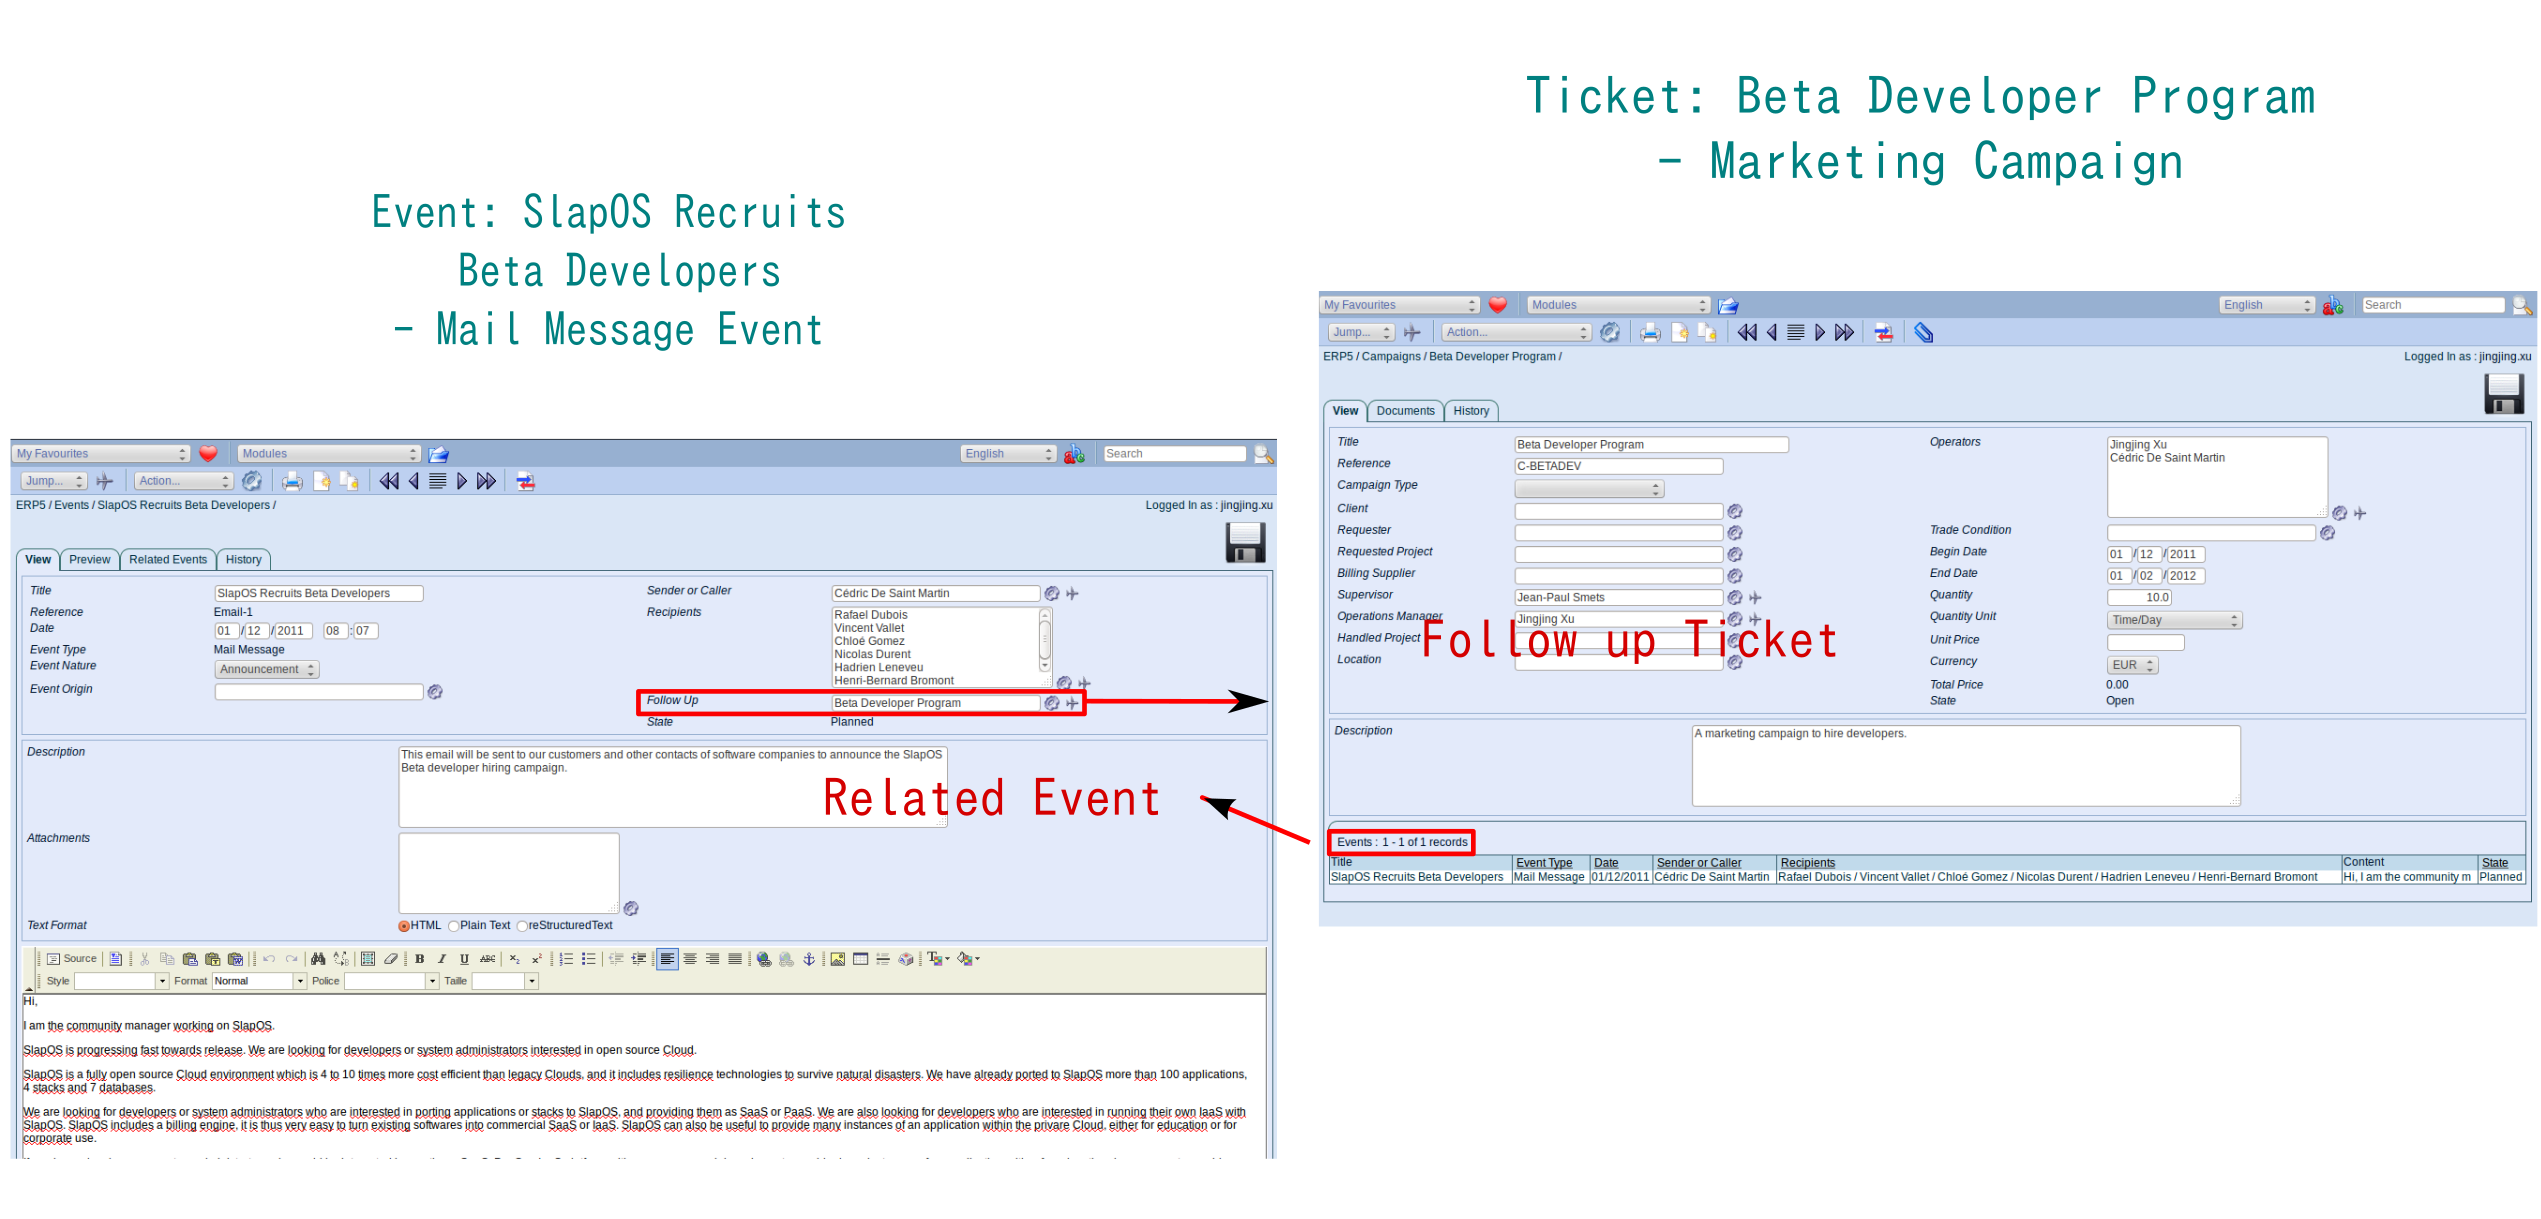 Example: Create the Event - Mail message from the Ticke - Beta Developer Program